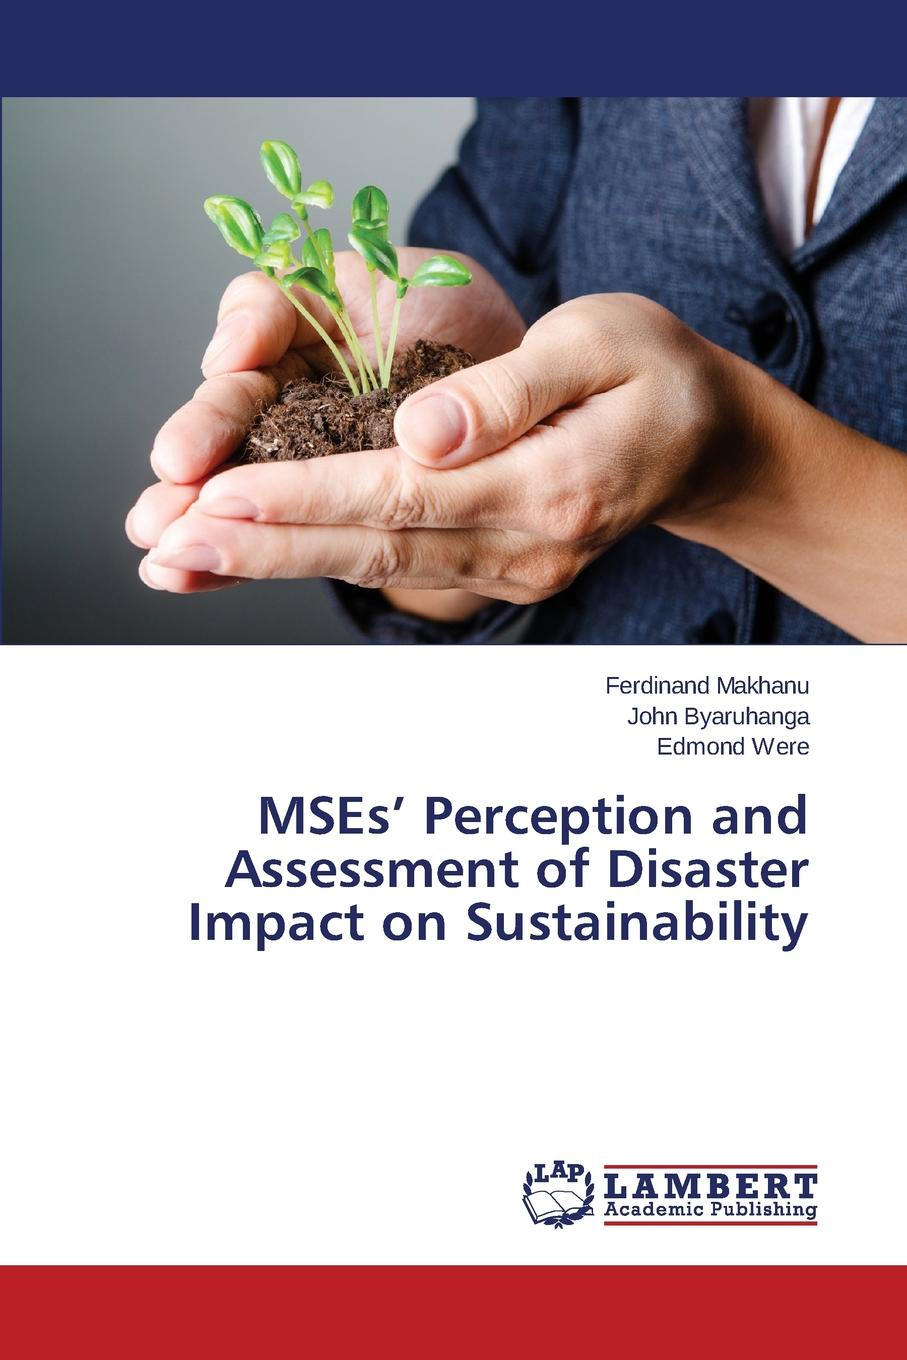 Makhanu Ferdinand, Byaruhanga John, Were Edmond MSEs. Perception and Assessment of Disaster Impact on Sustainability lowellyne james sustainability footprints in smes strategy and case studies for entrepreneurs and small business